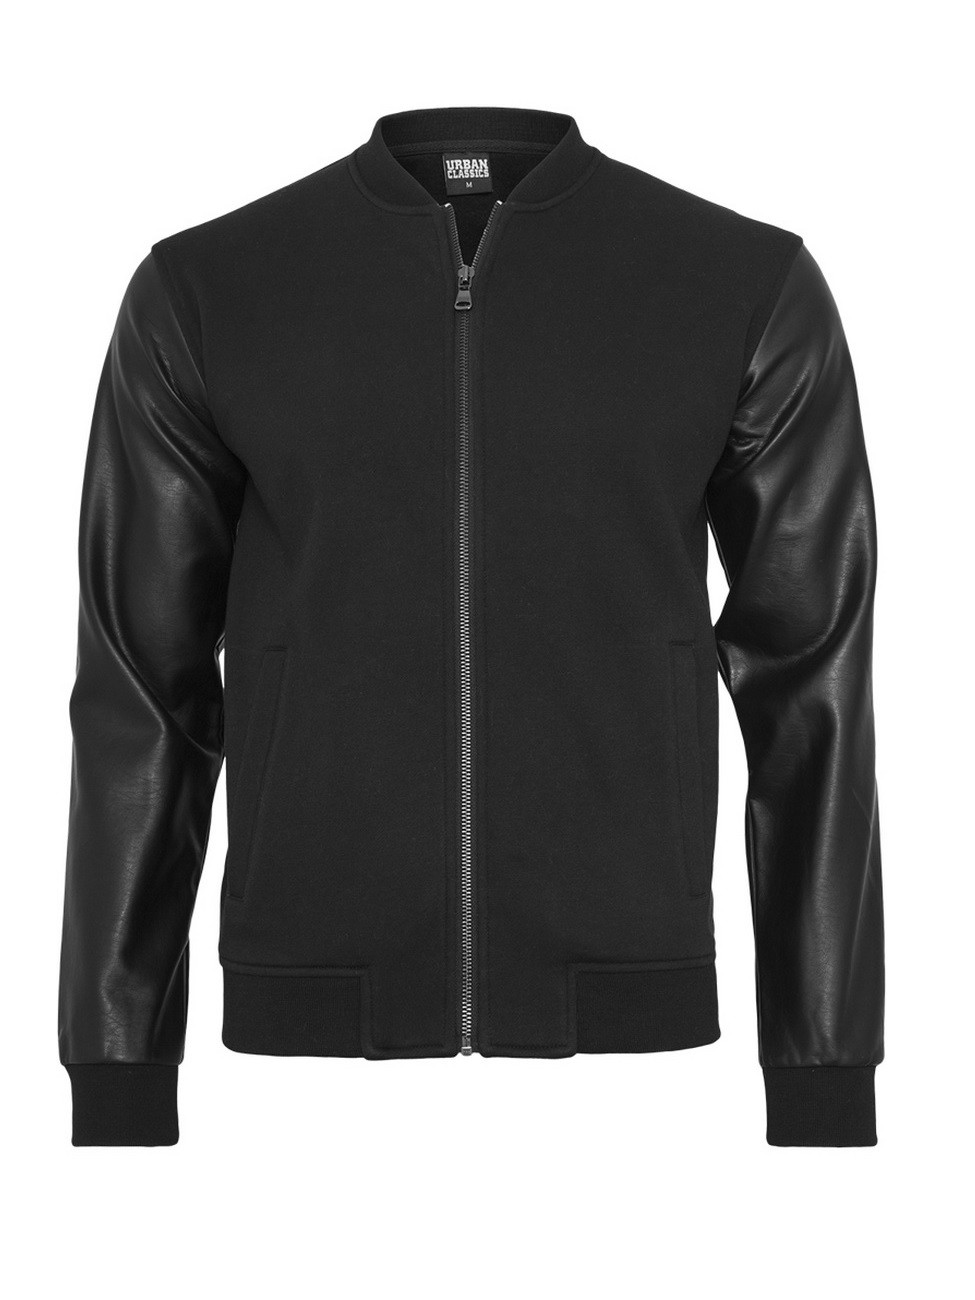 urban-classics-herren-jacke-zipped-leather-imitation-sleeve